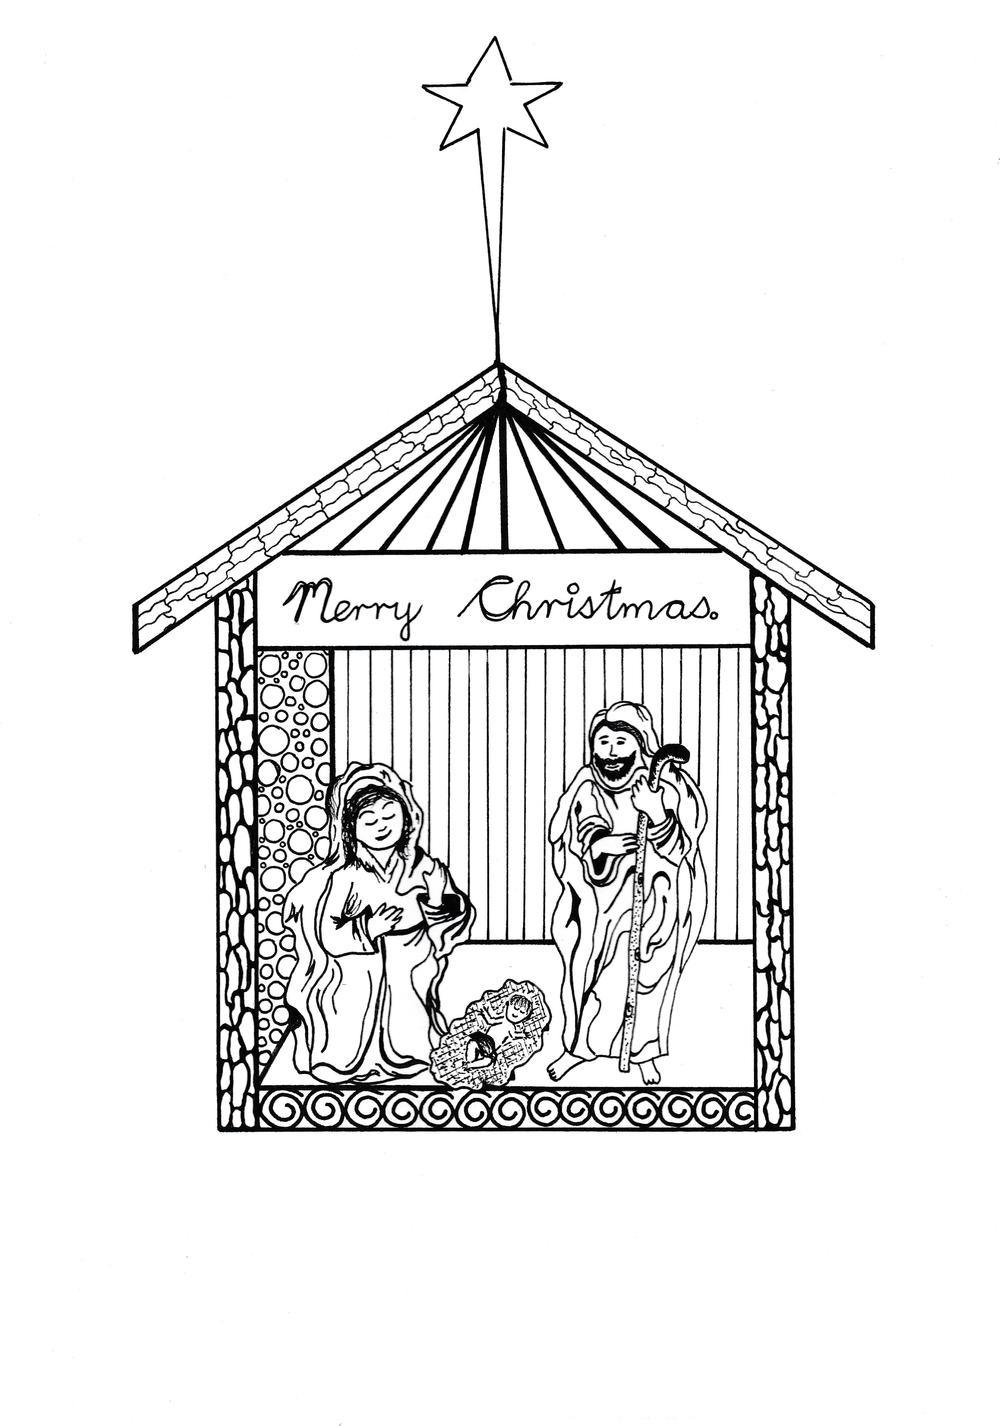 Colouring sheets nativity scene - Free Printable Nativity Scene Coloring Pages Allfreechristmascrafts Com